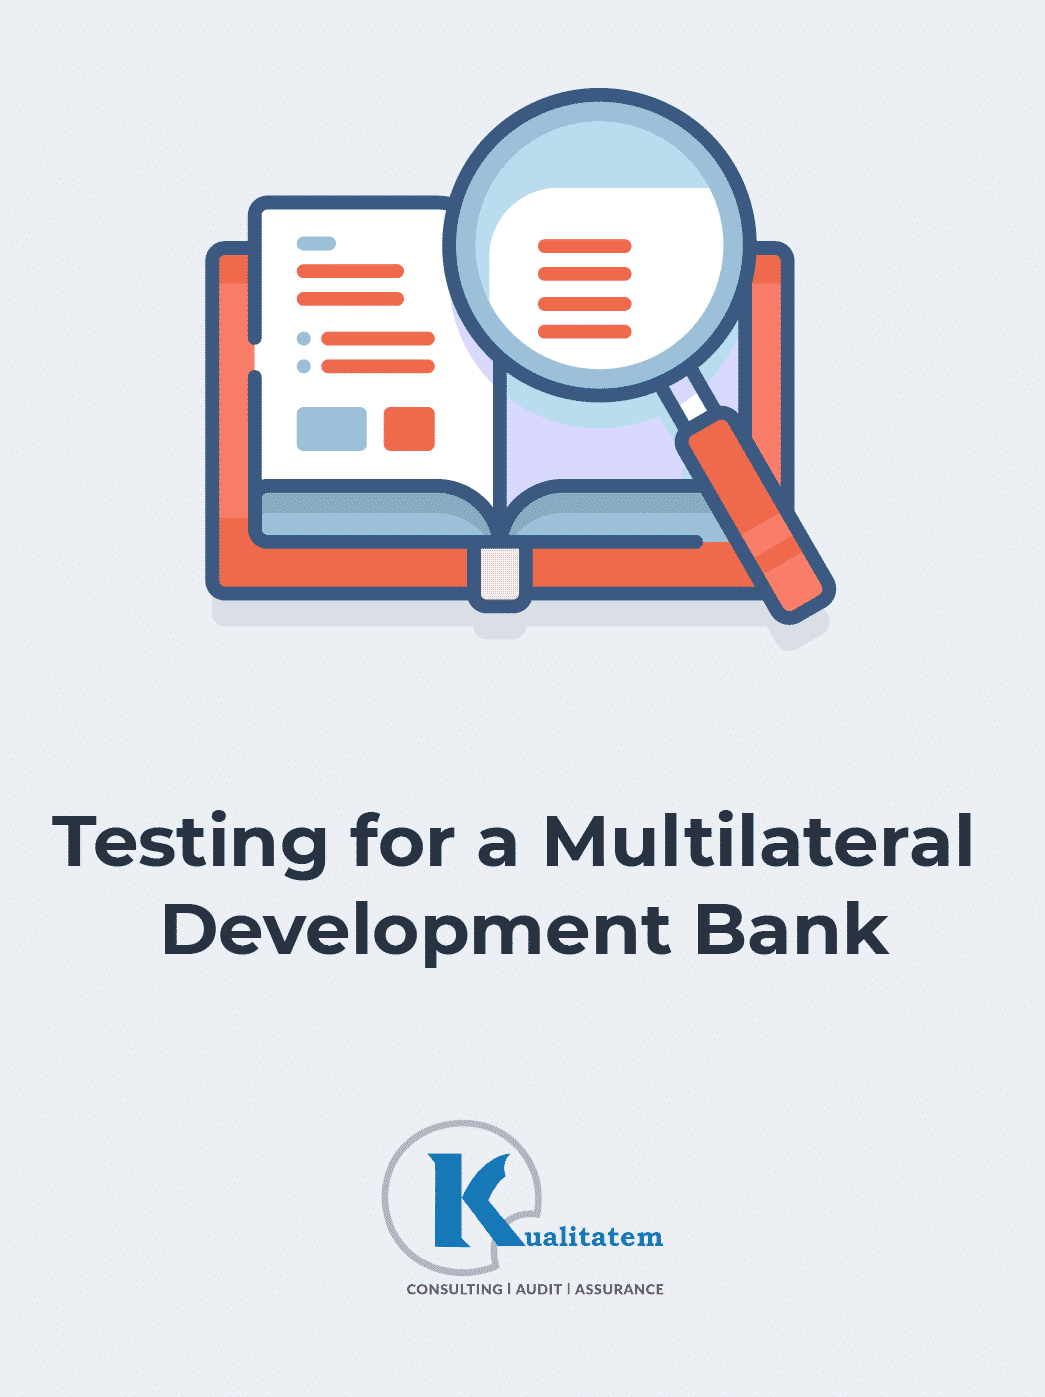 Case Study: Testing for a Multilateral Development Bank